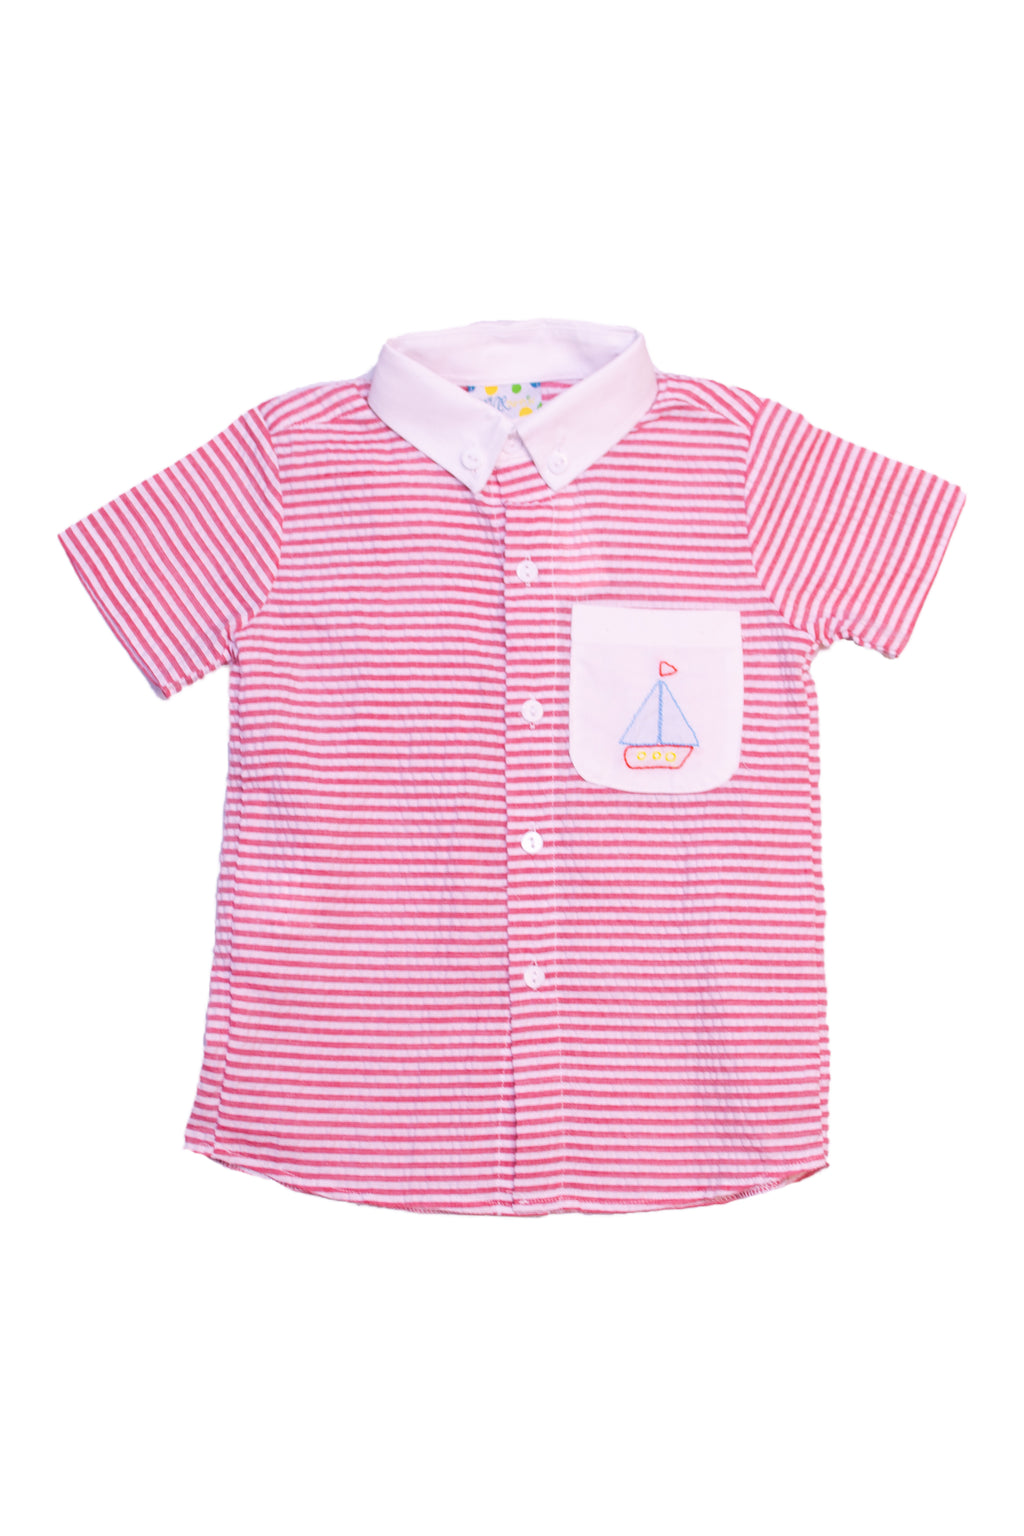 Boys Shadow Sailboat Shirt Only